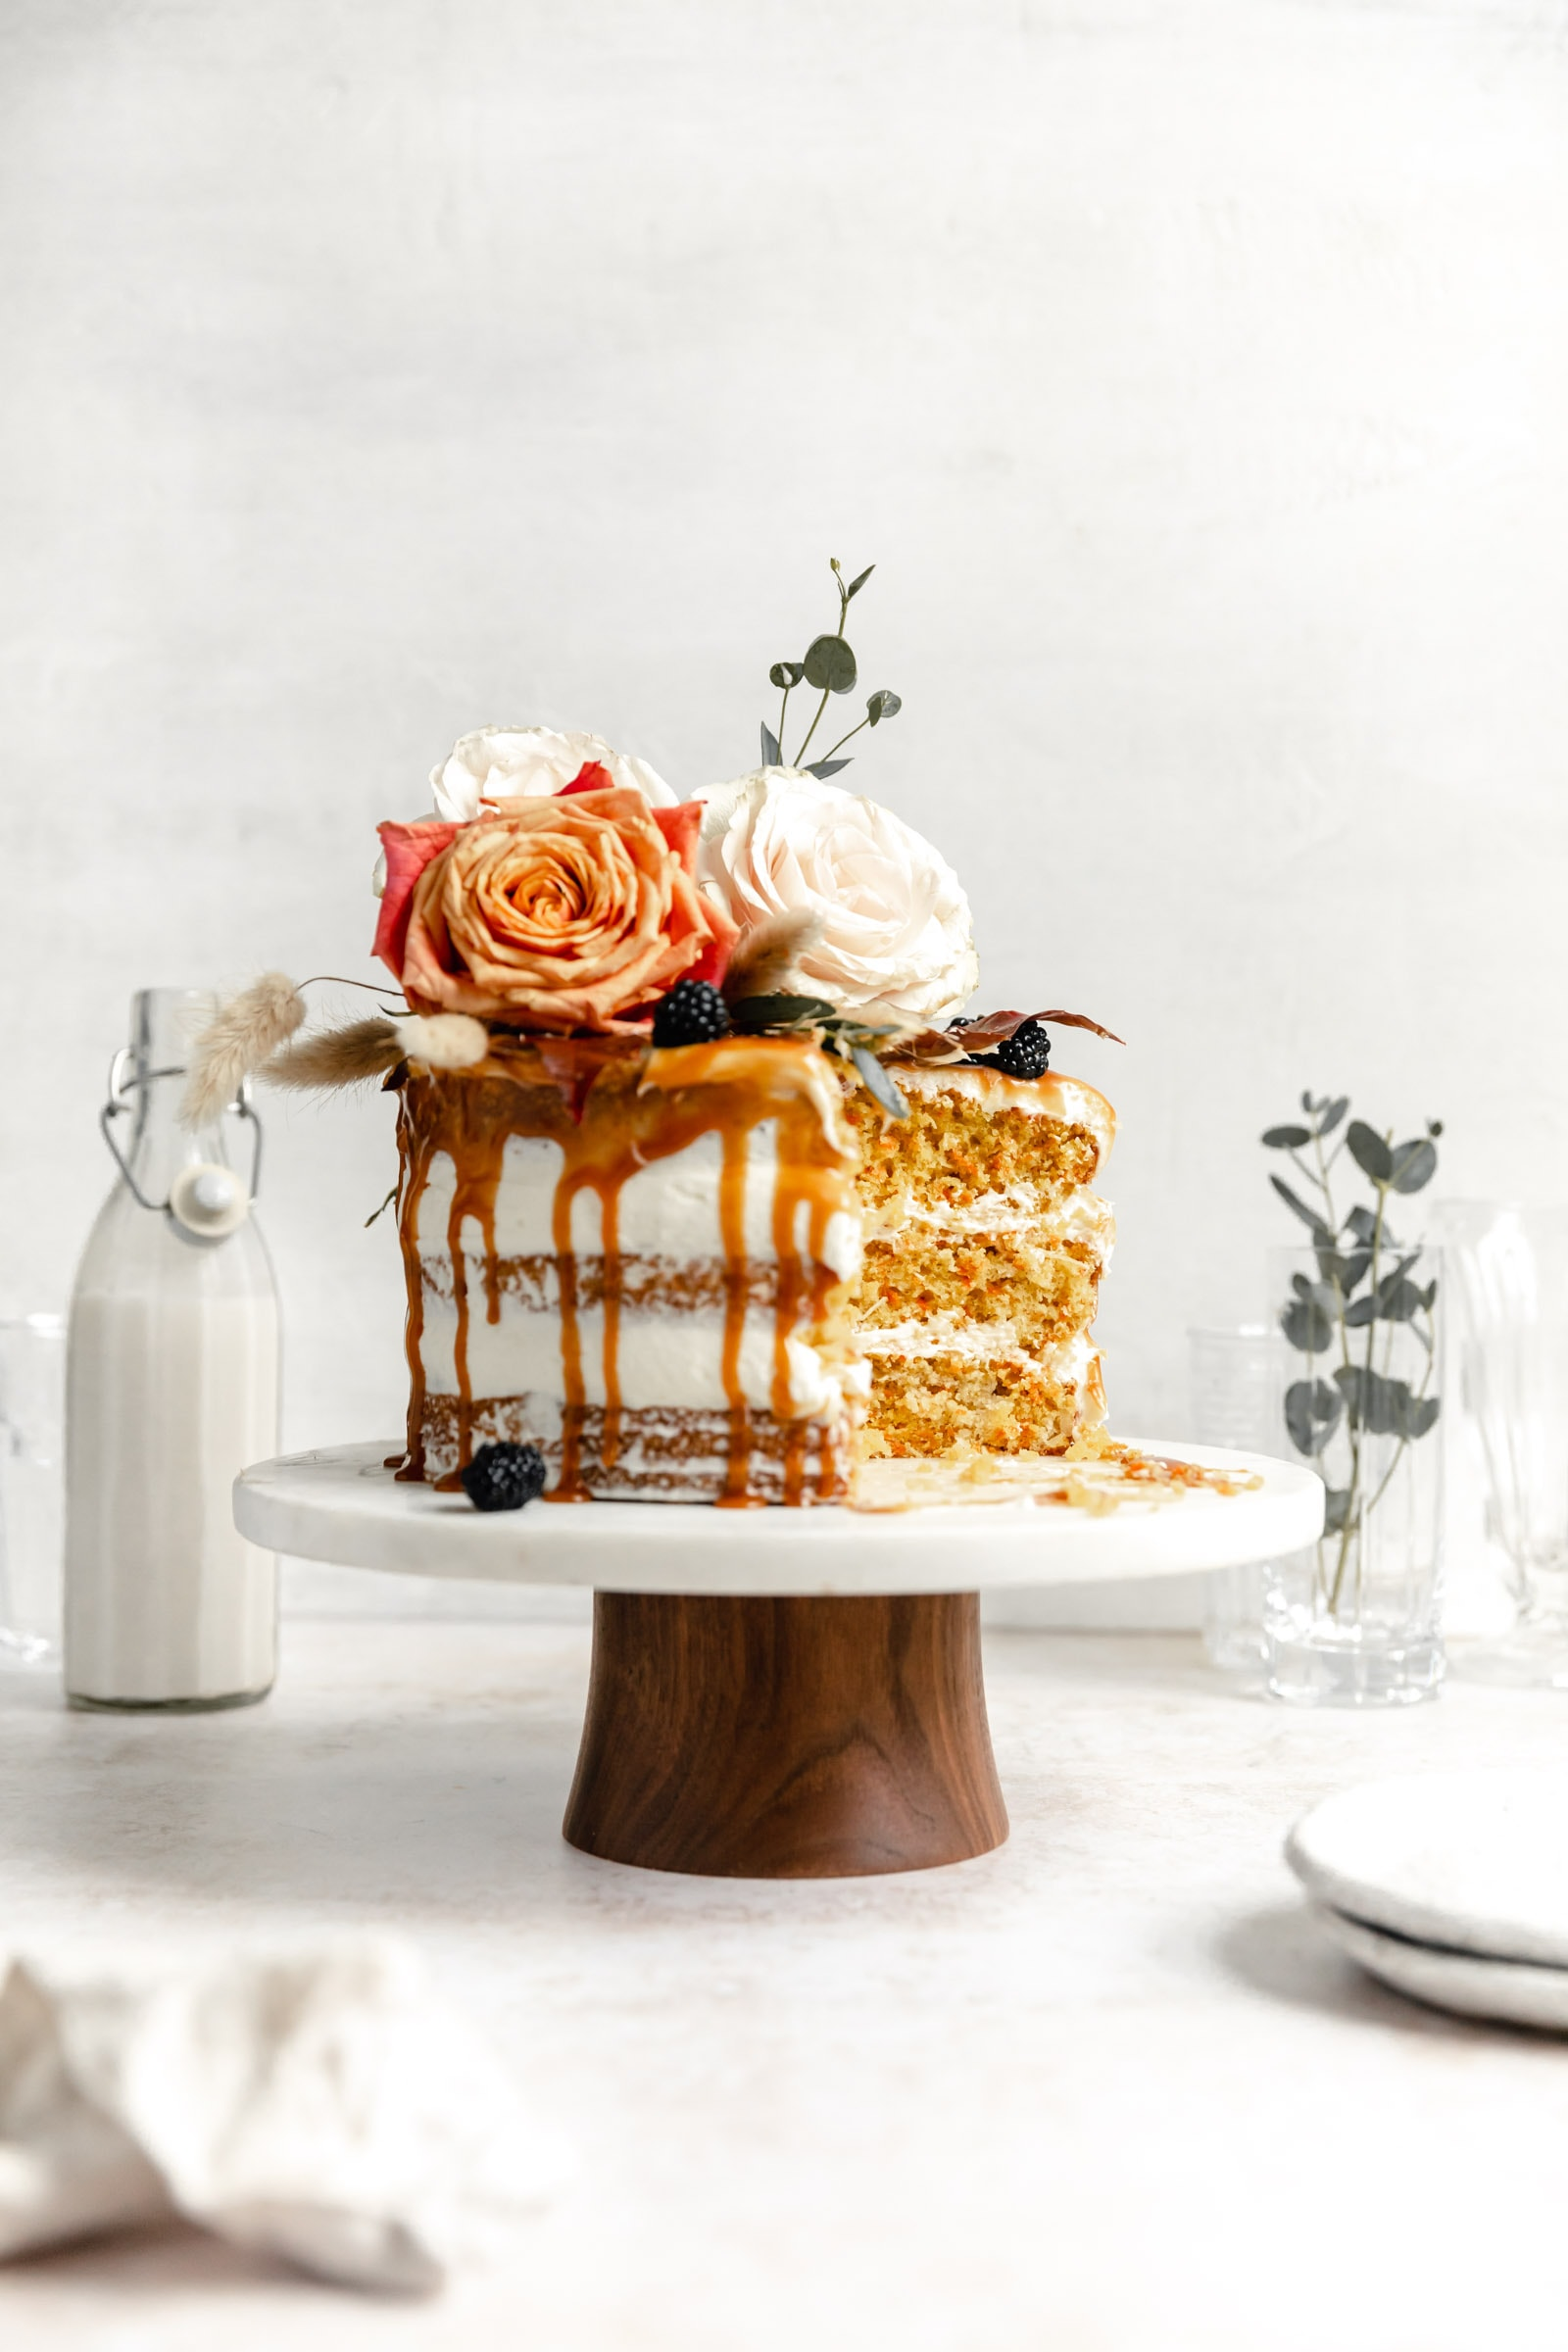 cardamom carrot cake with caramel and flowers